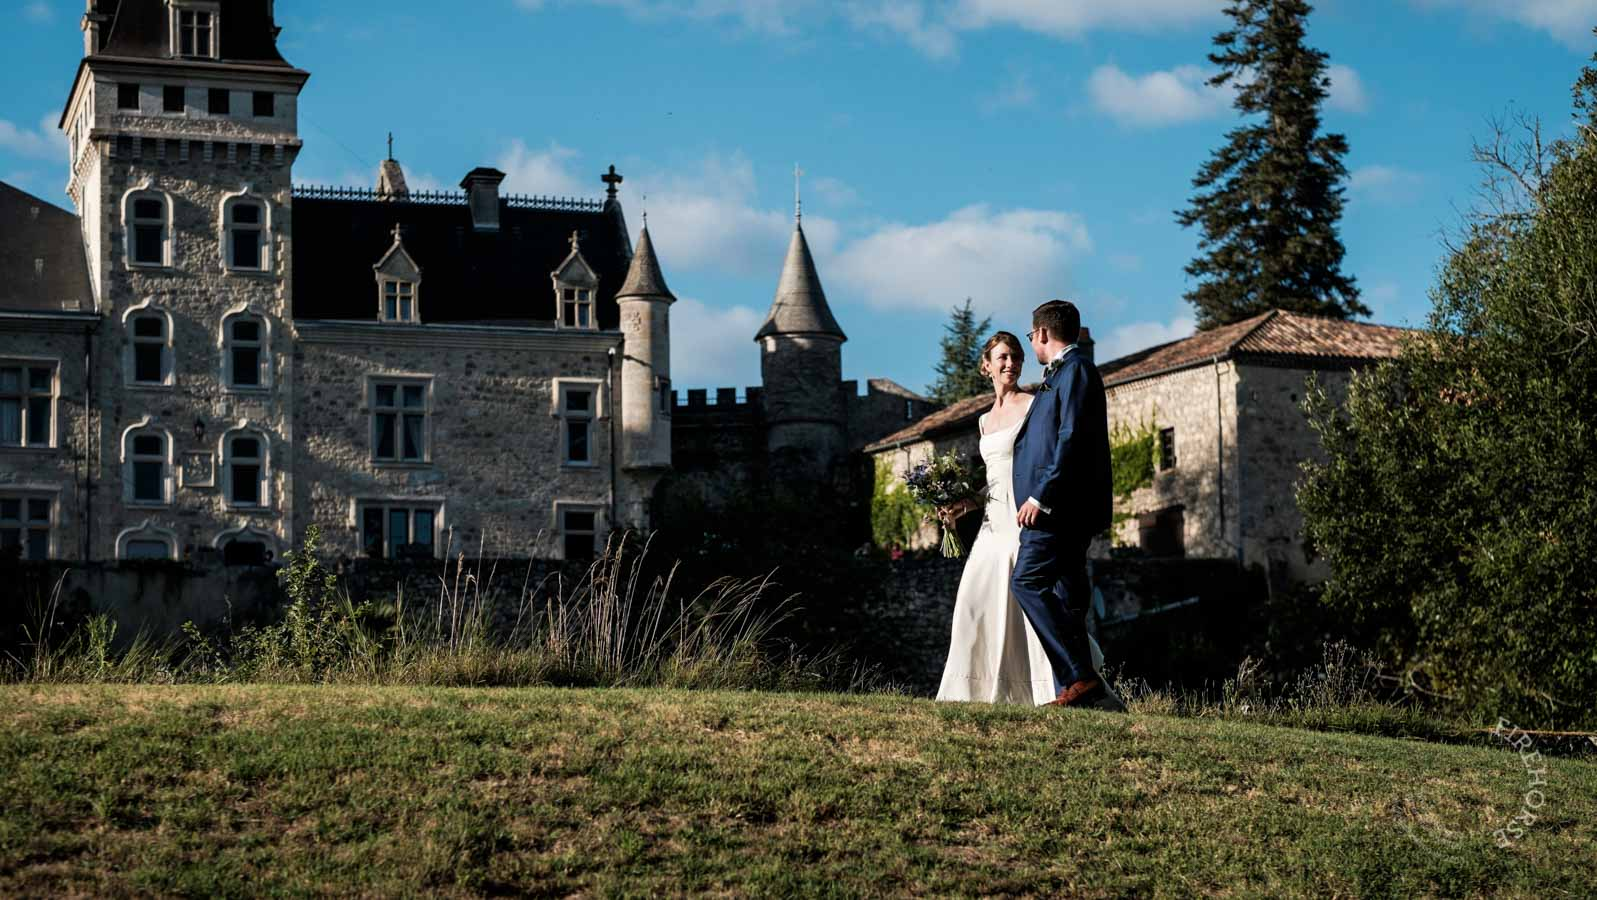 Lot-et-Garonne-Wedding-Photography-290